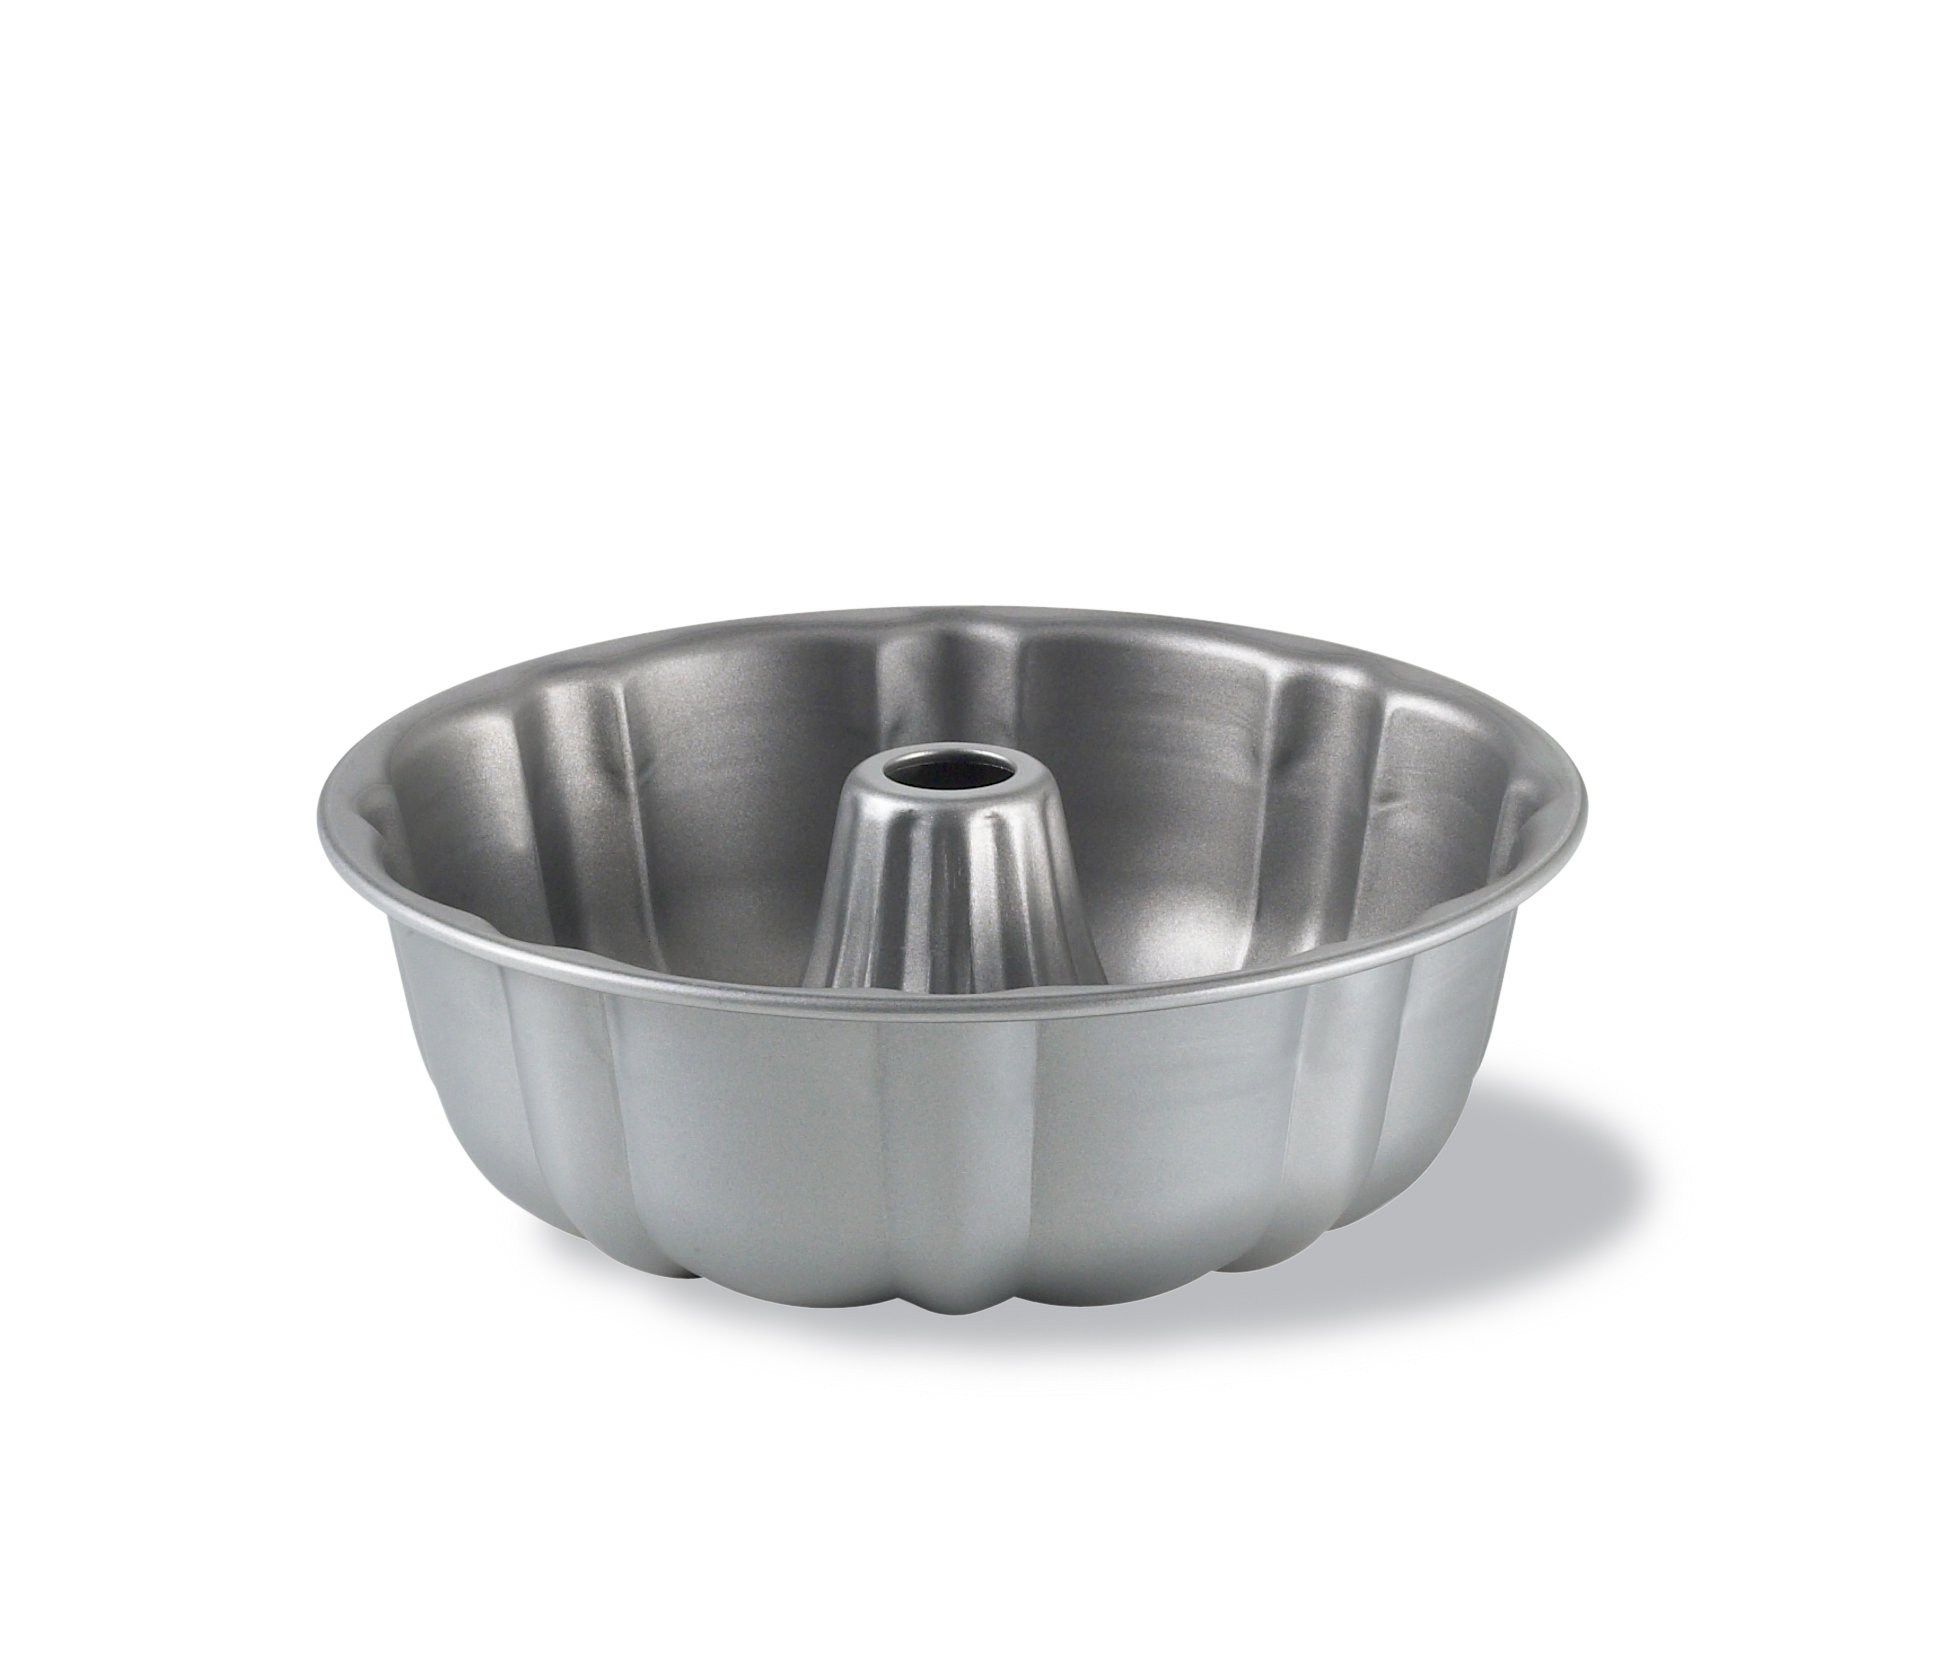 Calphalon Nonstick Bakeware 10-in. Bundt Pan